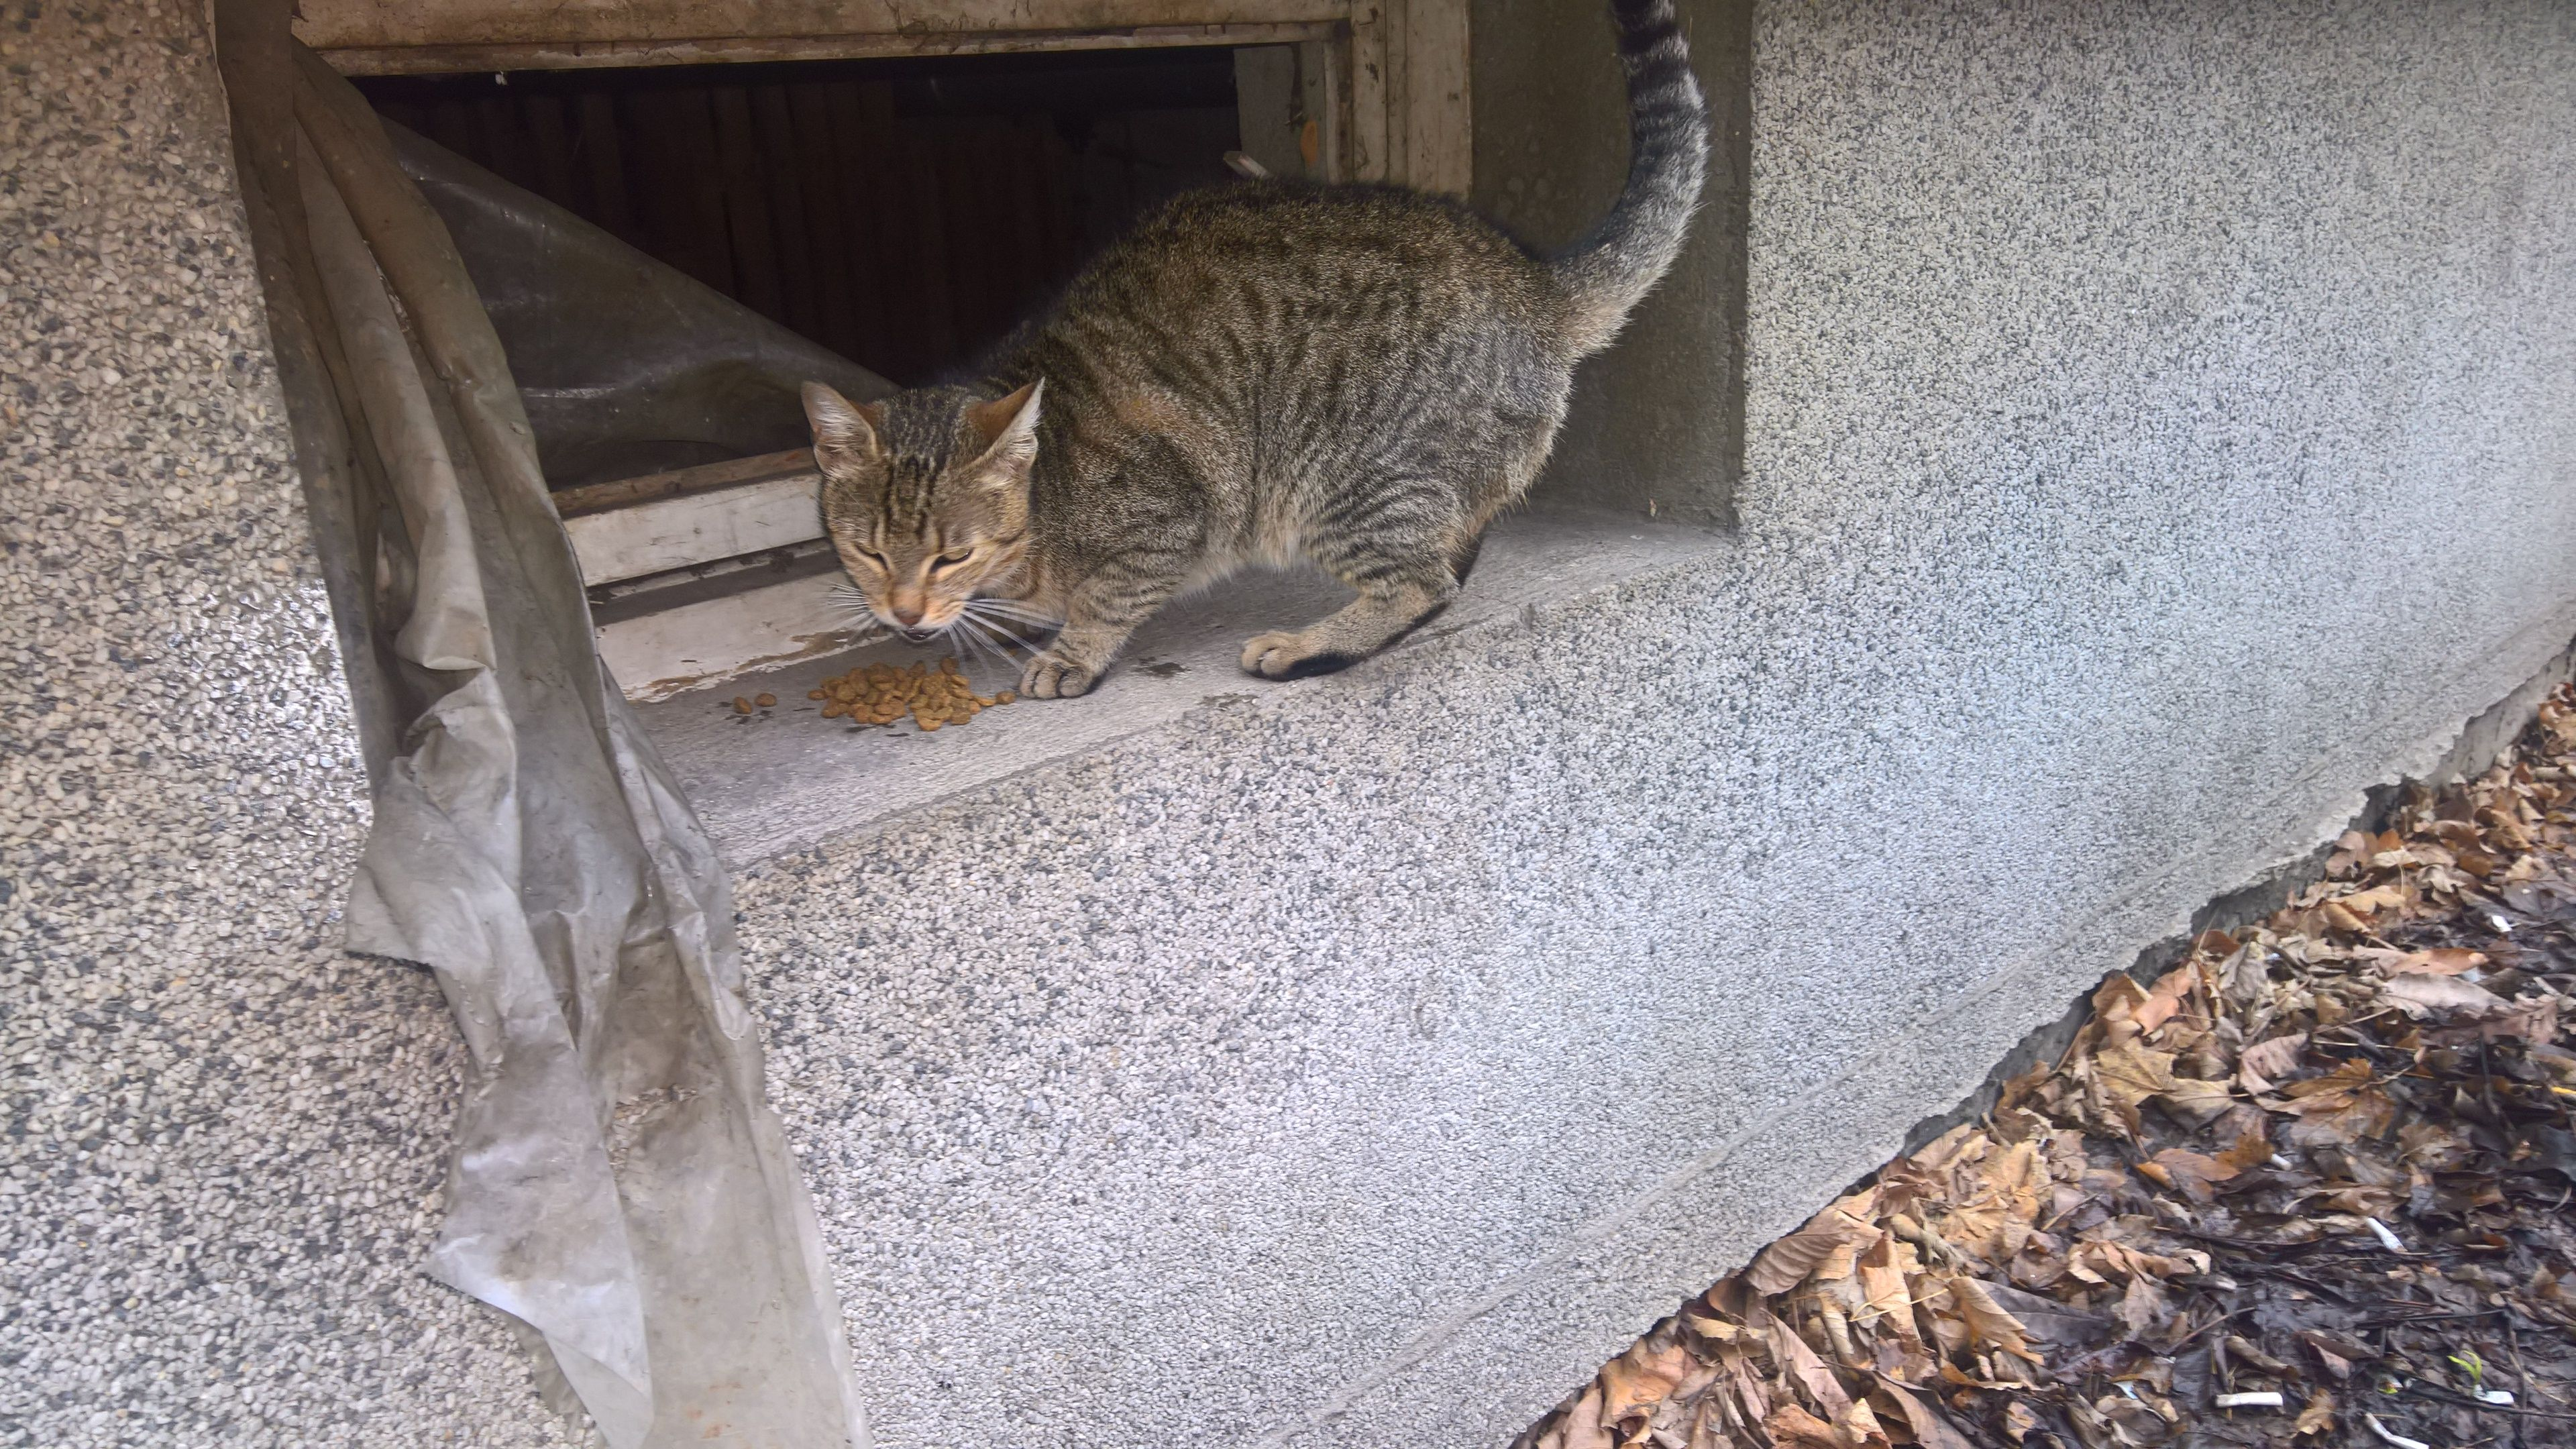 Marija Saved A Kitten Lilly She Was Only A Few Weeks Old One Of Her Eyes Was Closed And She Wasn T Able To Eat On Her Own E Cat Help Cats